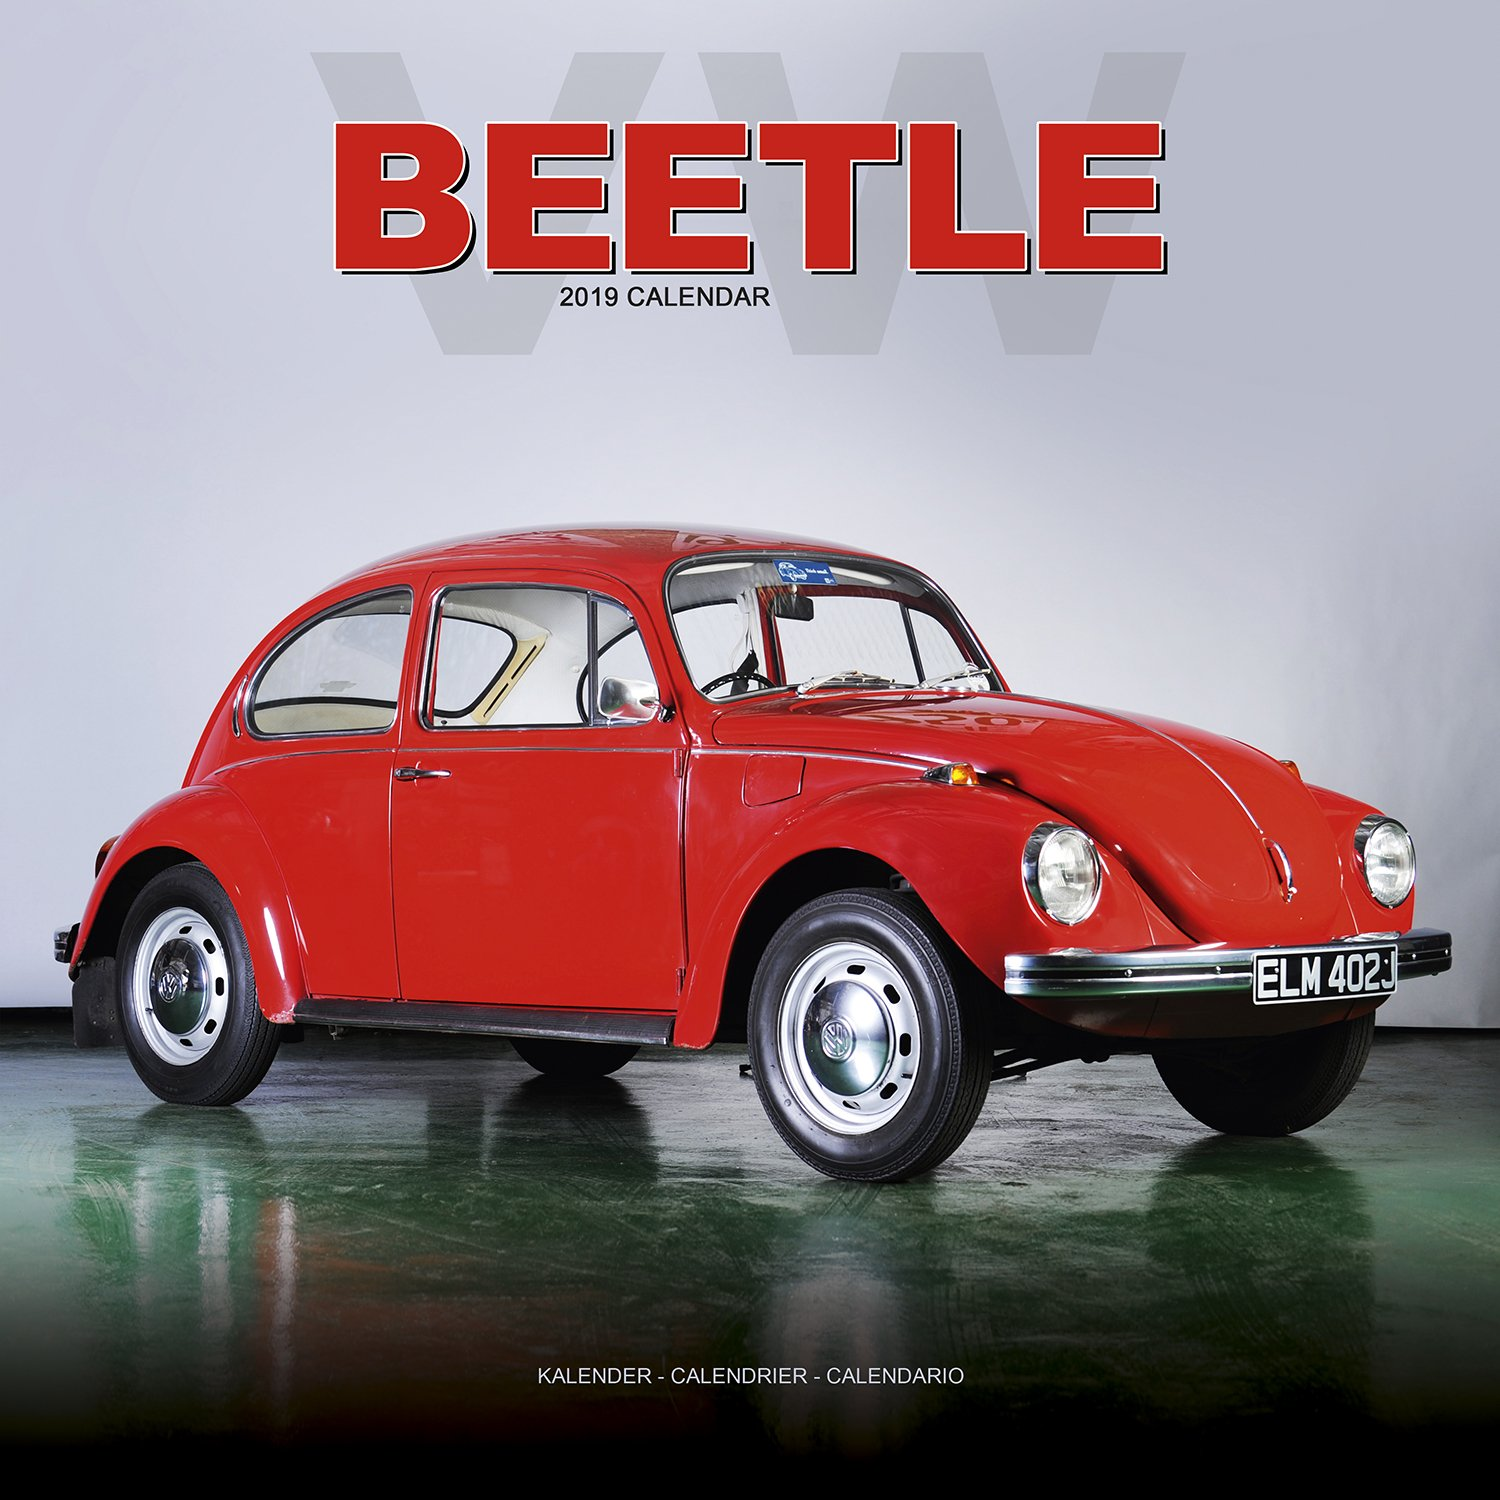 VW Beetle Calendar- Calendars 2018 - 2019 Wall Calendars - Car Calendar - Automobile Calendar - Beetle 16 Month Wall Calendar by Avonside Calendar – July 6, 2018 MegaCalendars Avonside Publishing LTD 1785804421 Art